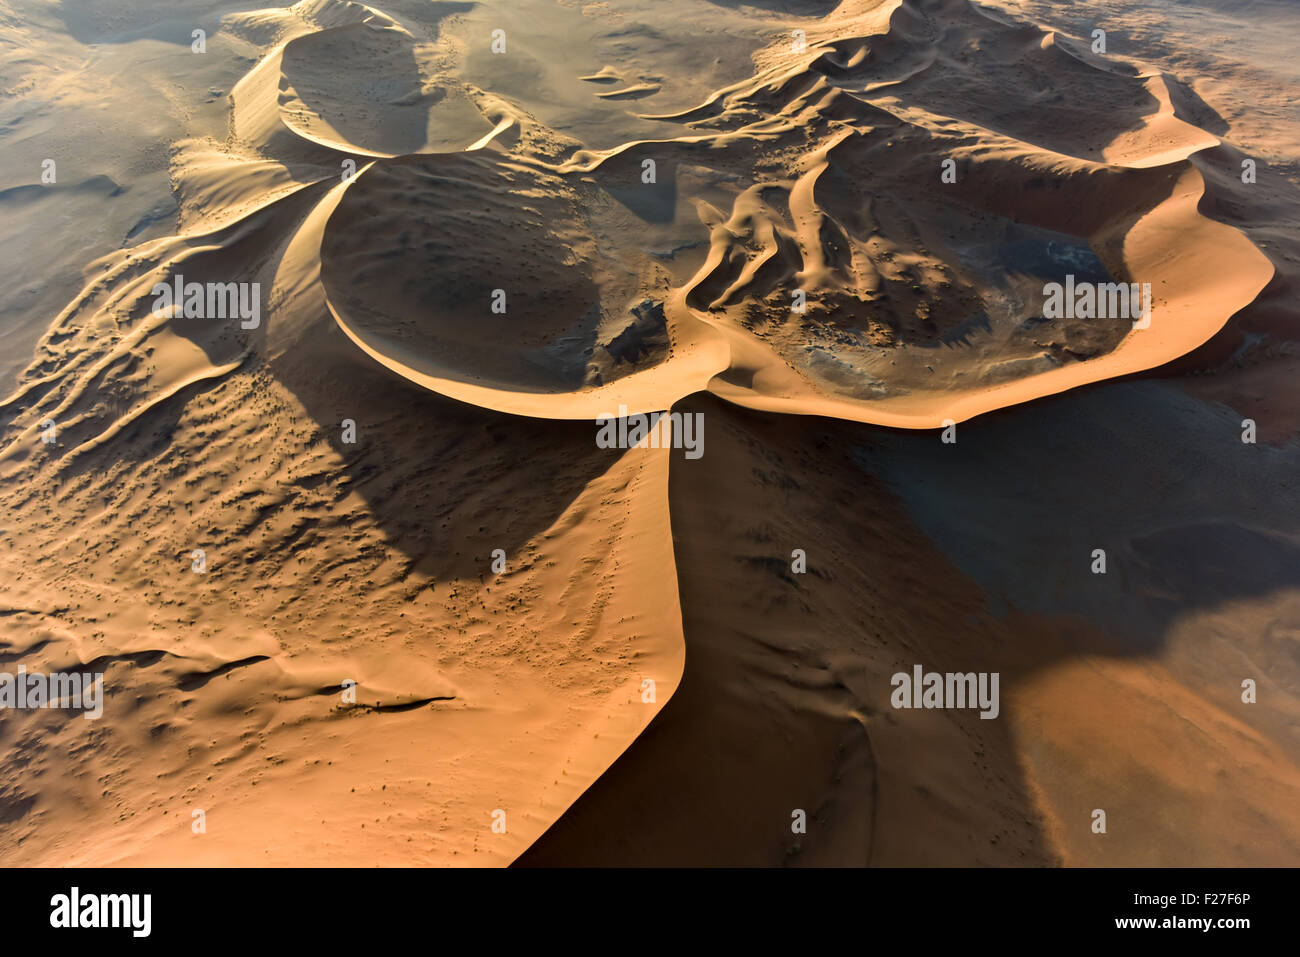 Luftaufnahme des hohen roten Dünen, befindet sich in der Namib-Wüste, in der Namib-Naukluft Nationalpark Stockbild